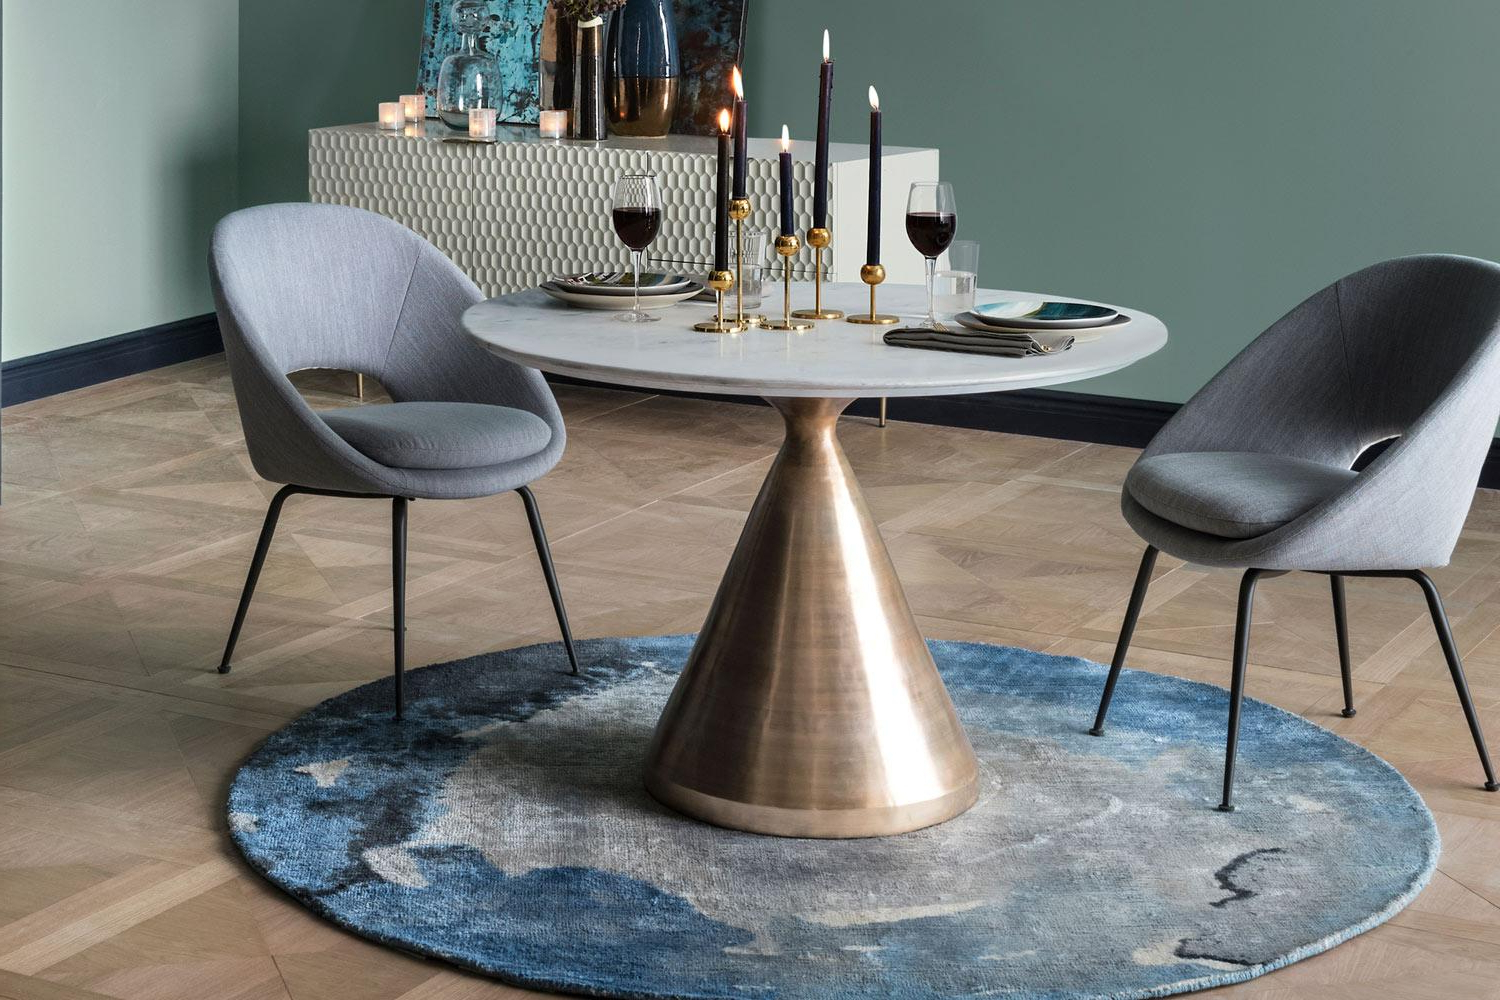 Best Dining Tables: The Best Stylish Dining Room Tables 2019 With Regard To Popular Acacia Wood Top Dining Tables With Iron Legs On Raw Metal (View 25 of 30)